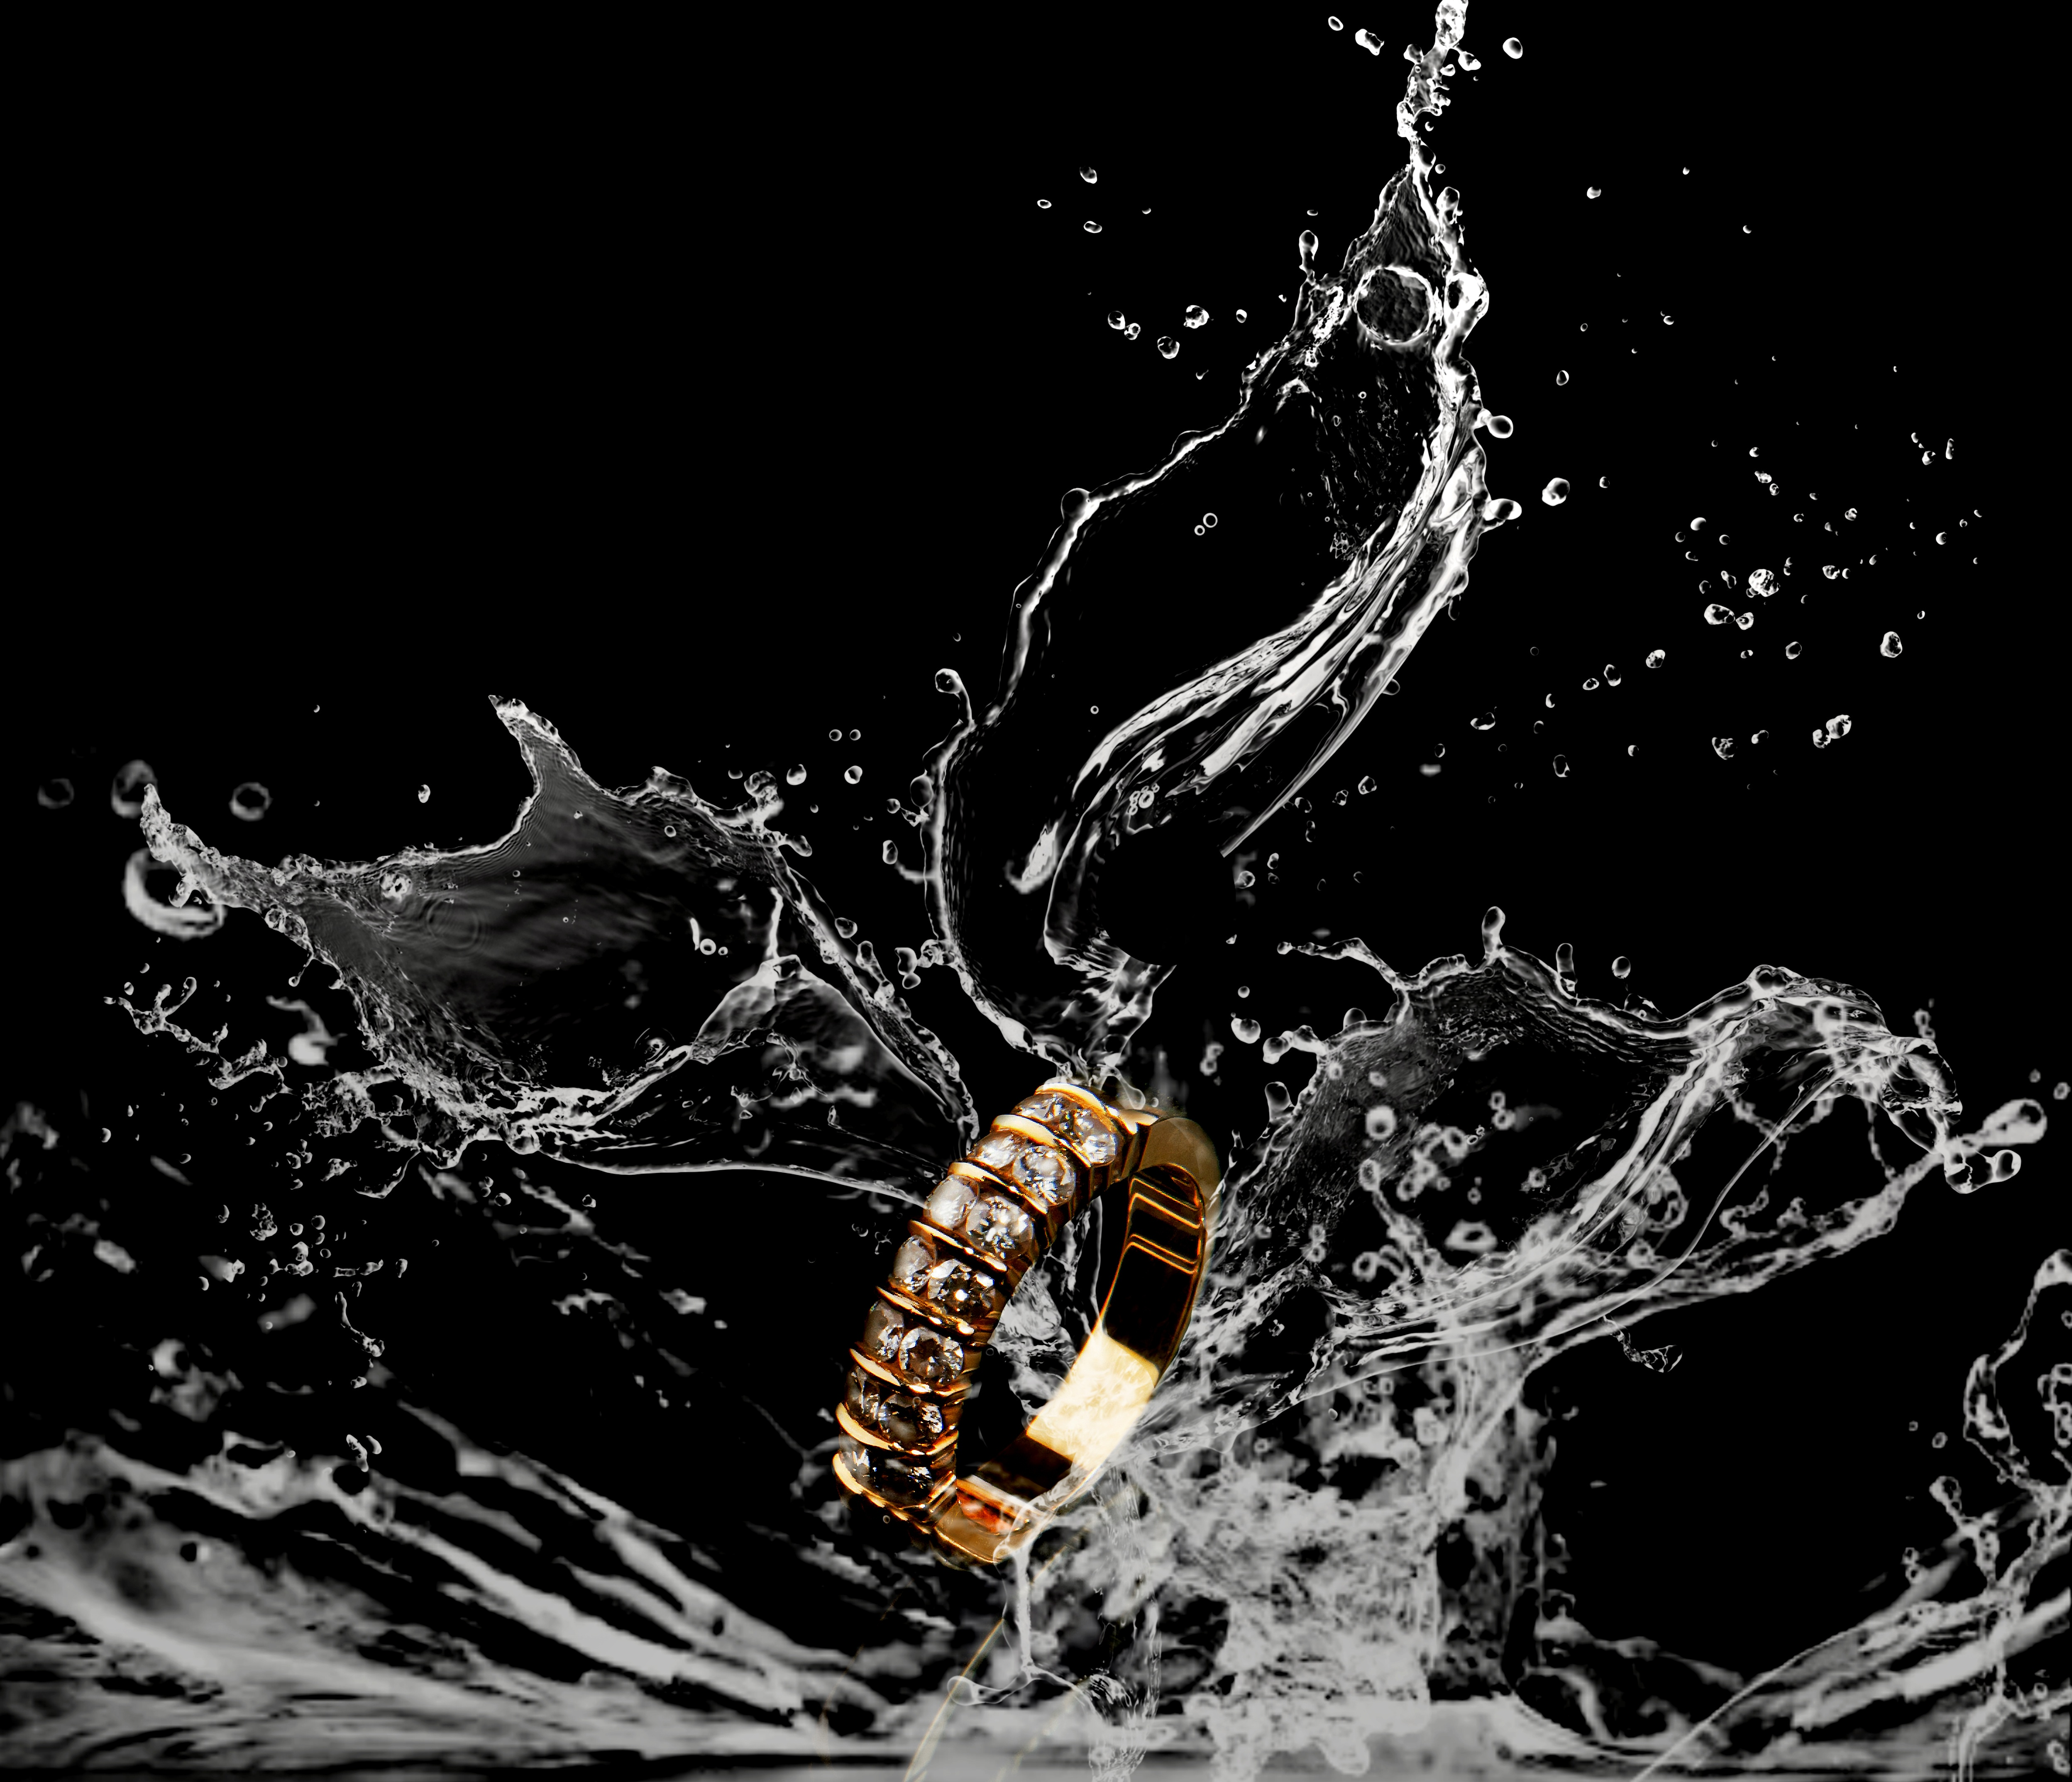 96309 download wallpaper Macro, Ring, Spray, Splash, Liquid screensavers and pictures for free